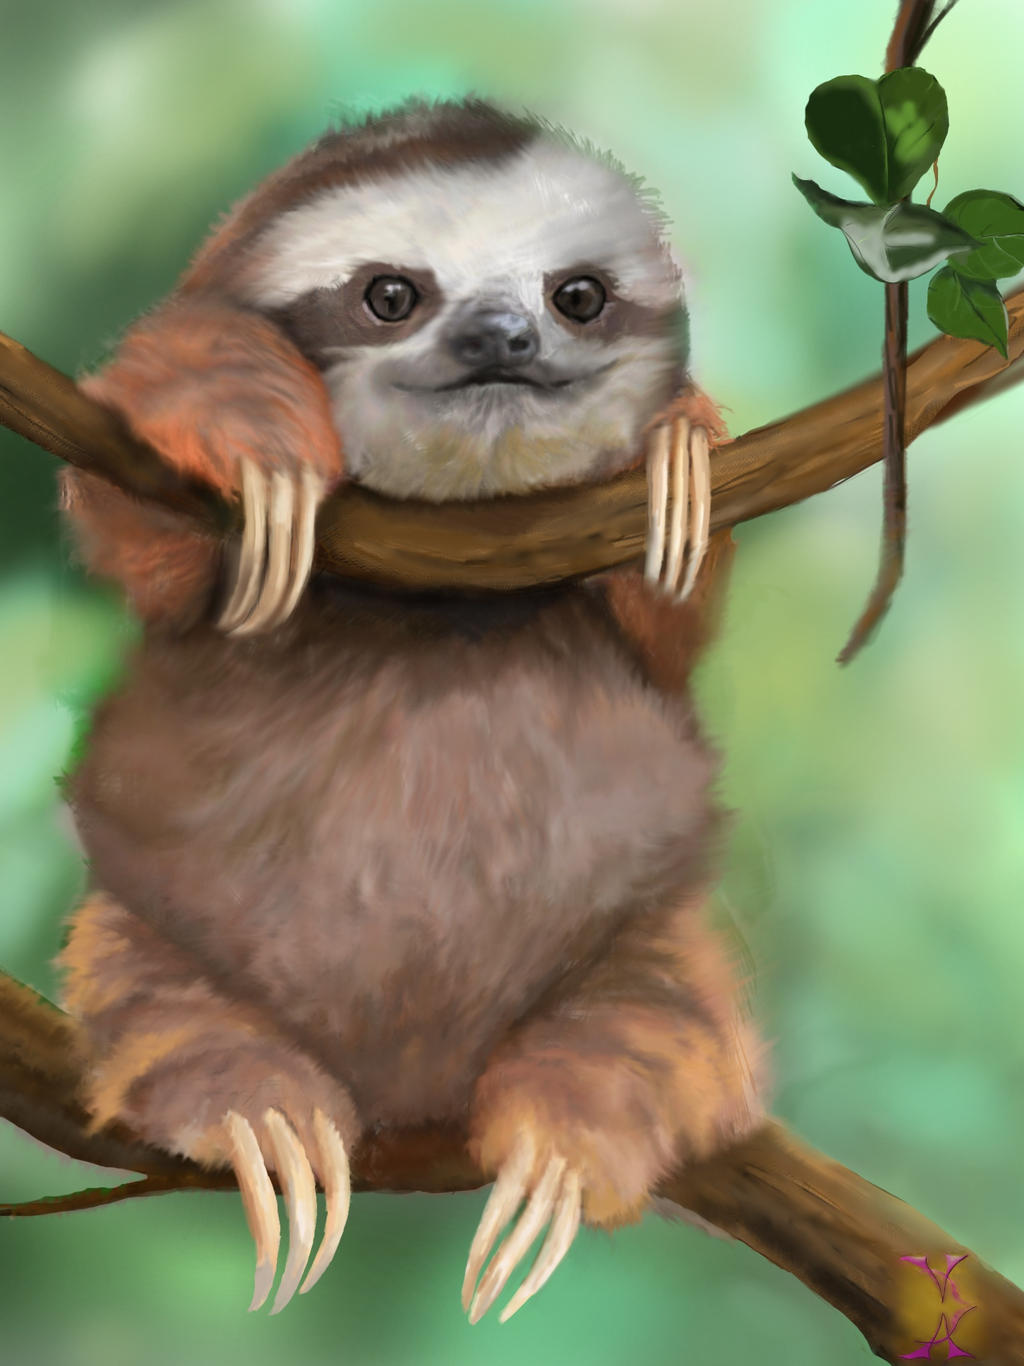 baby sloth by violetadams on deviantart